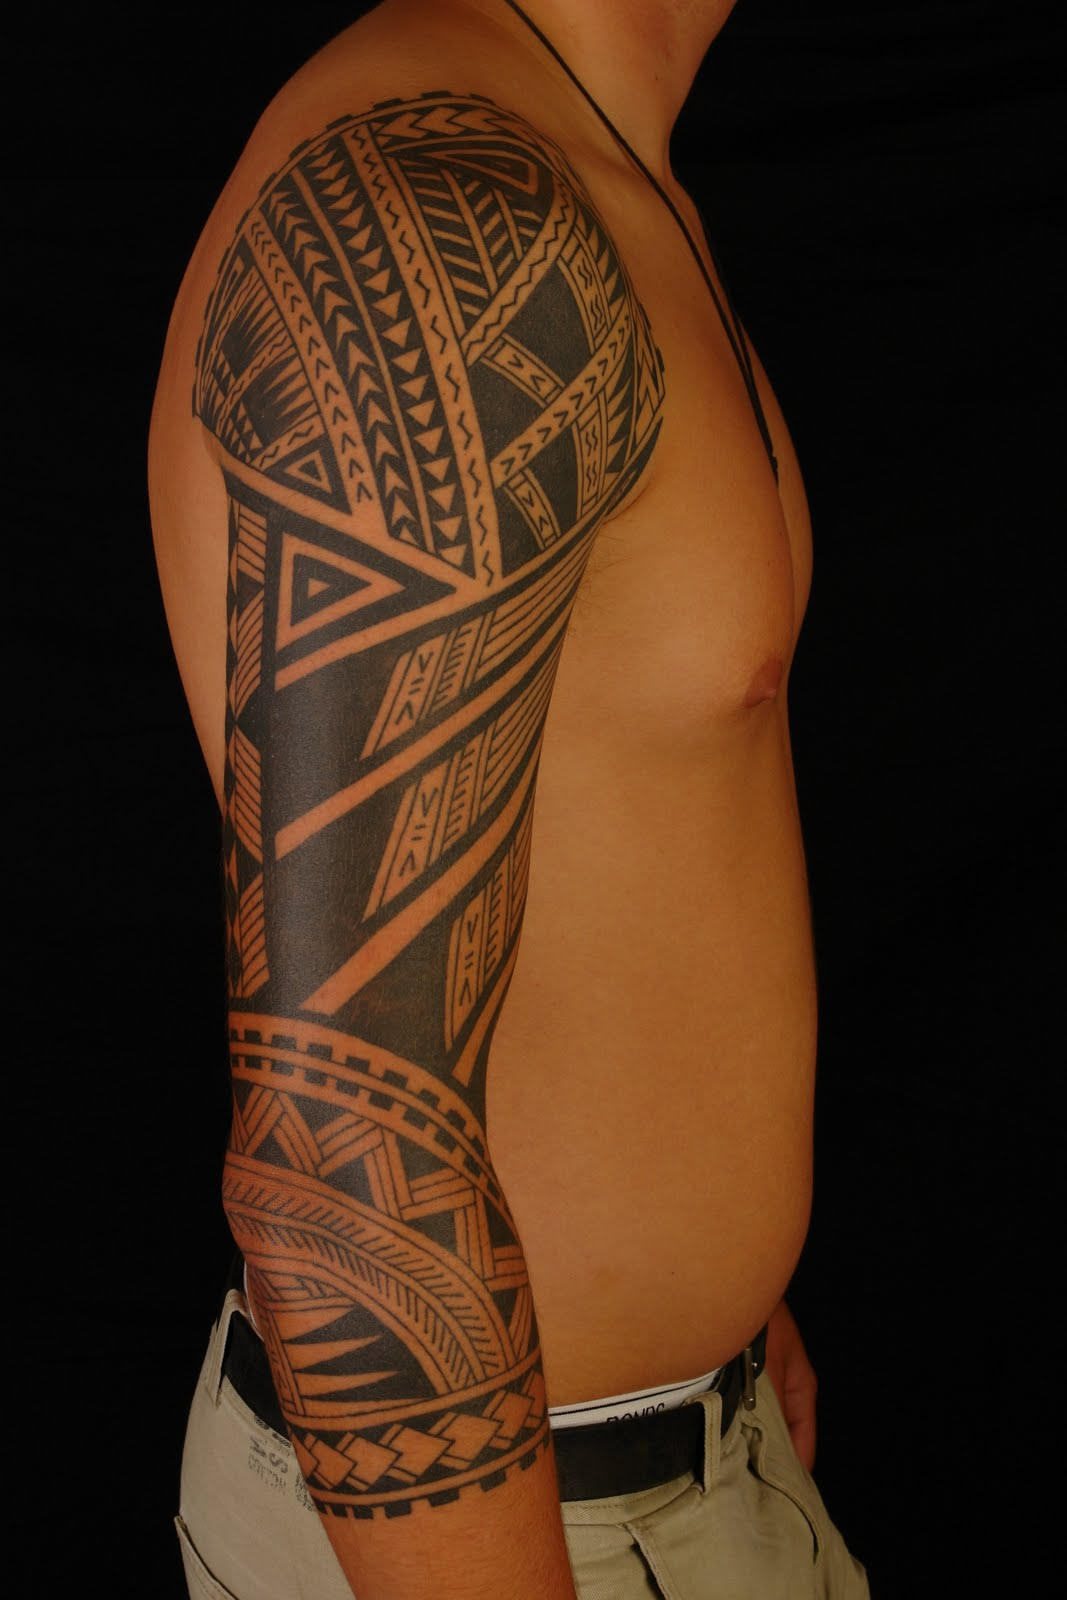 samoan tattoos designs ideas and meaning tattoos for you. Black Bedroom Furniture Sets. Home Design Ideas